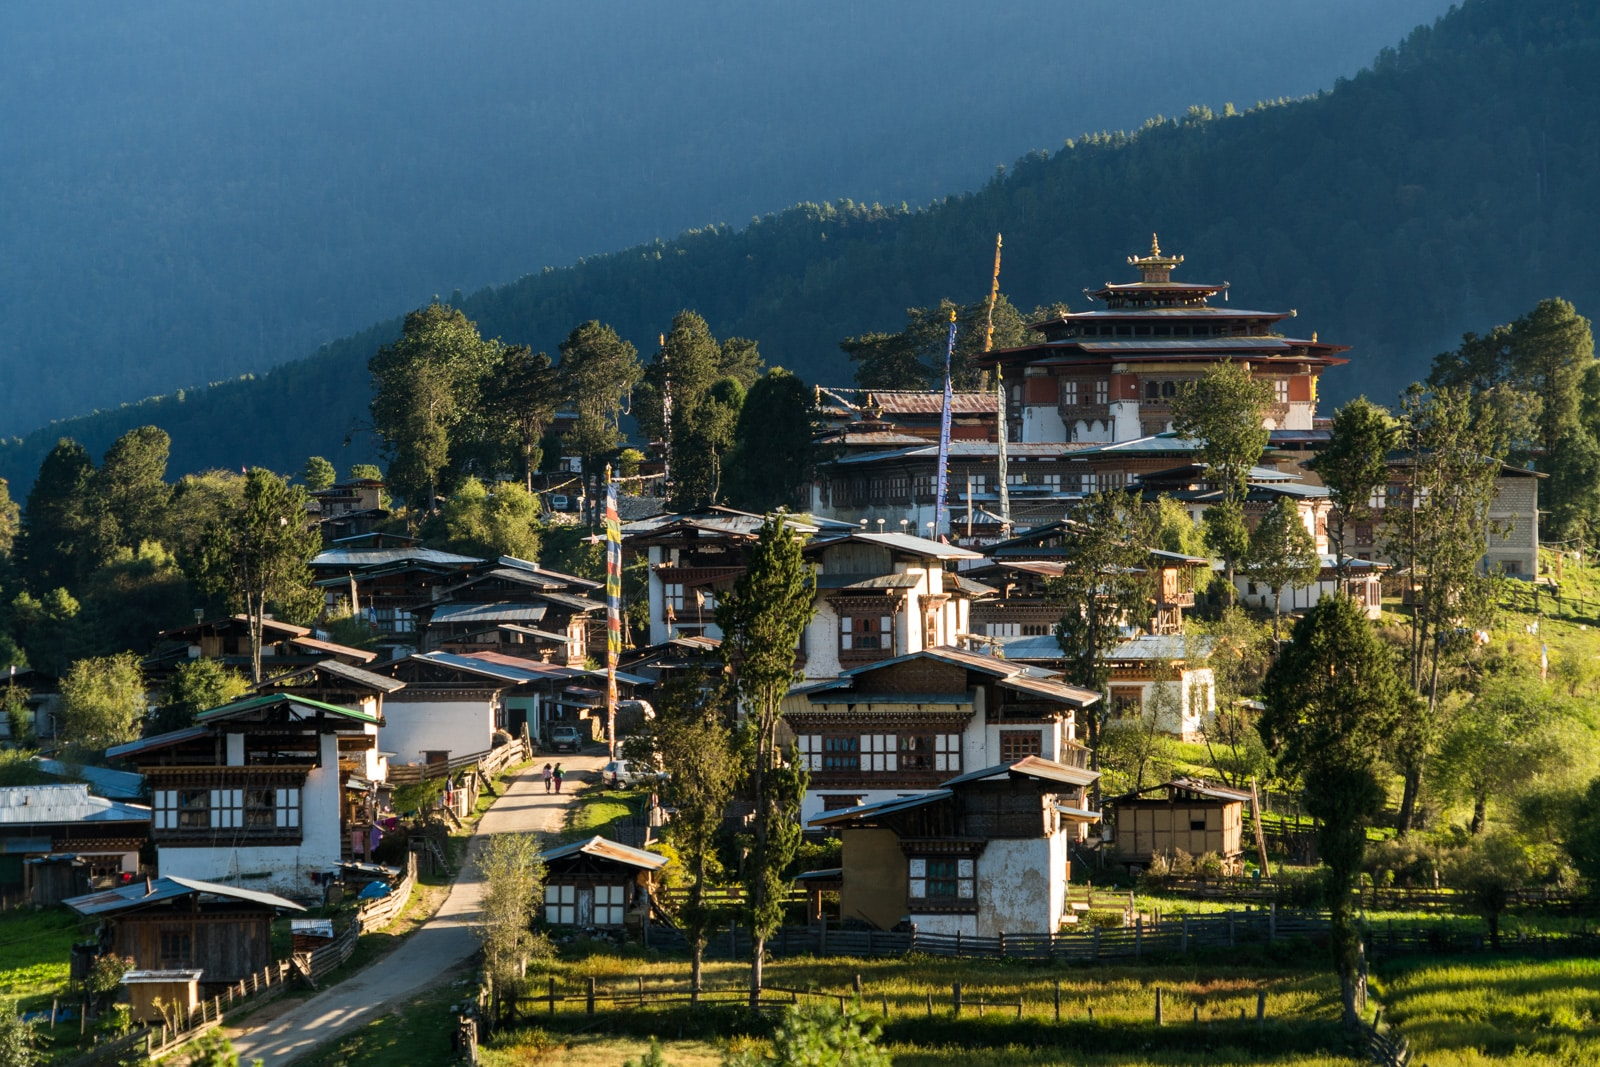 Stunning photos of Bhutan - Gangtey village hilltop at sunset - Lost With Purpose travel blog